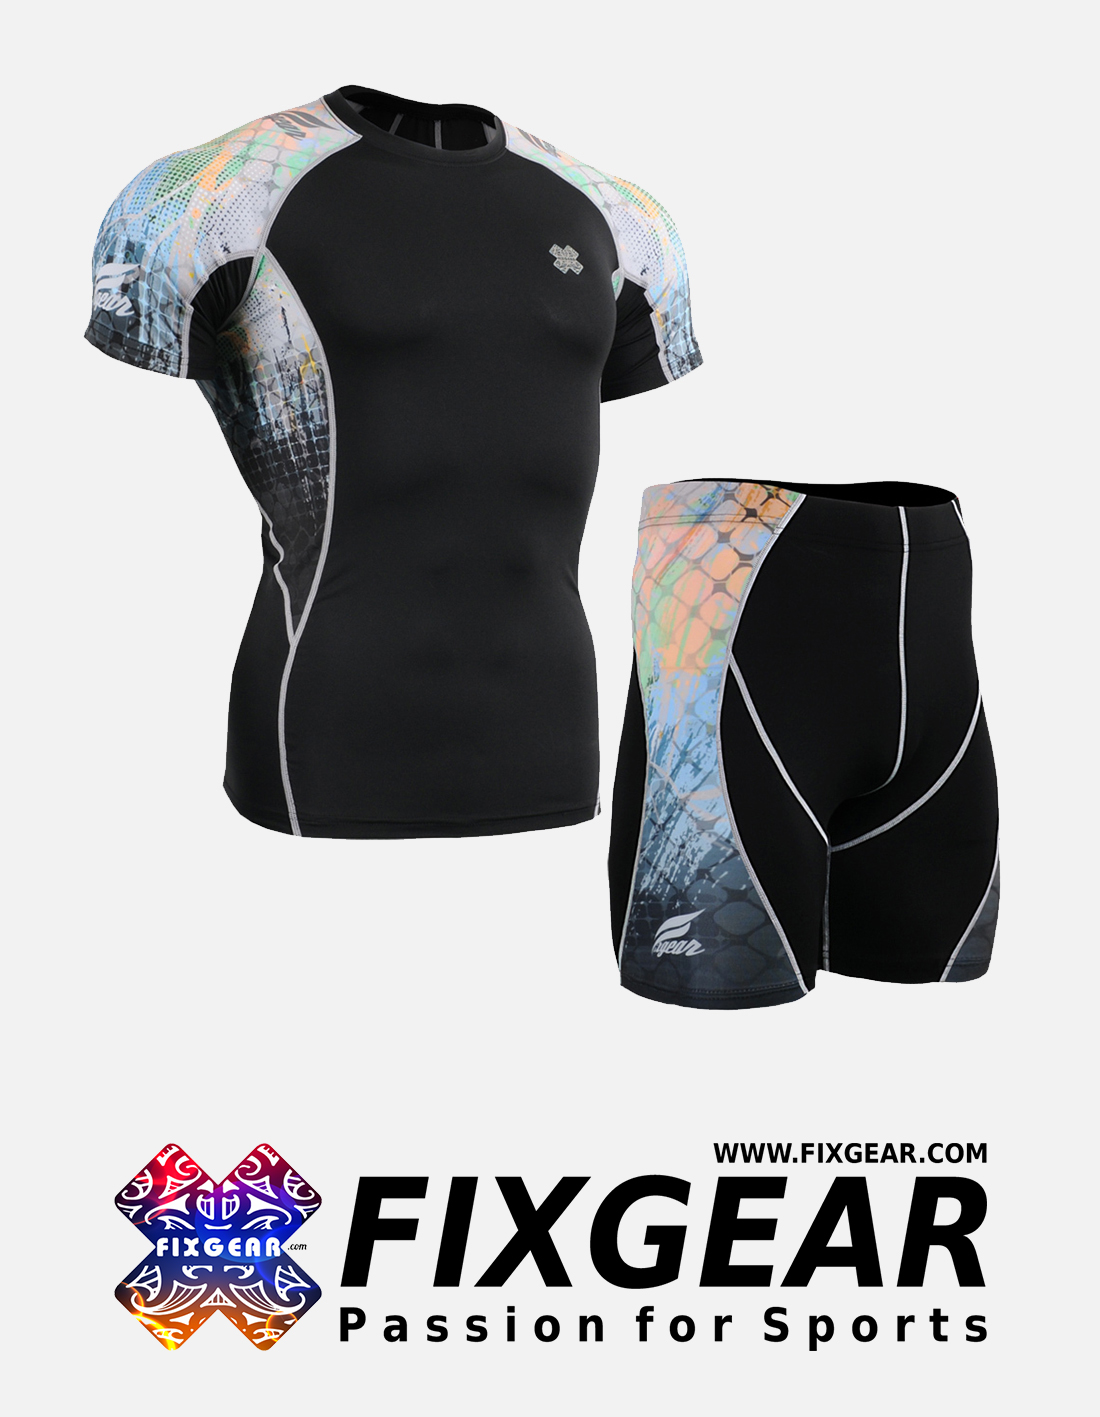 FIXGEAR C2S-P2S-B42 Set Compression Base Layer Shirt & Compression Drawer Shorts